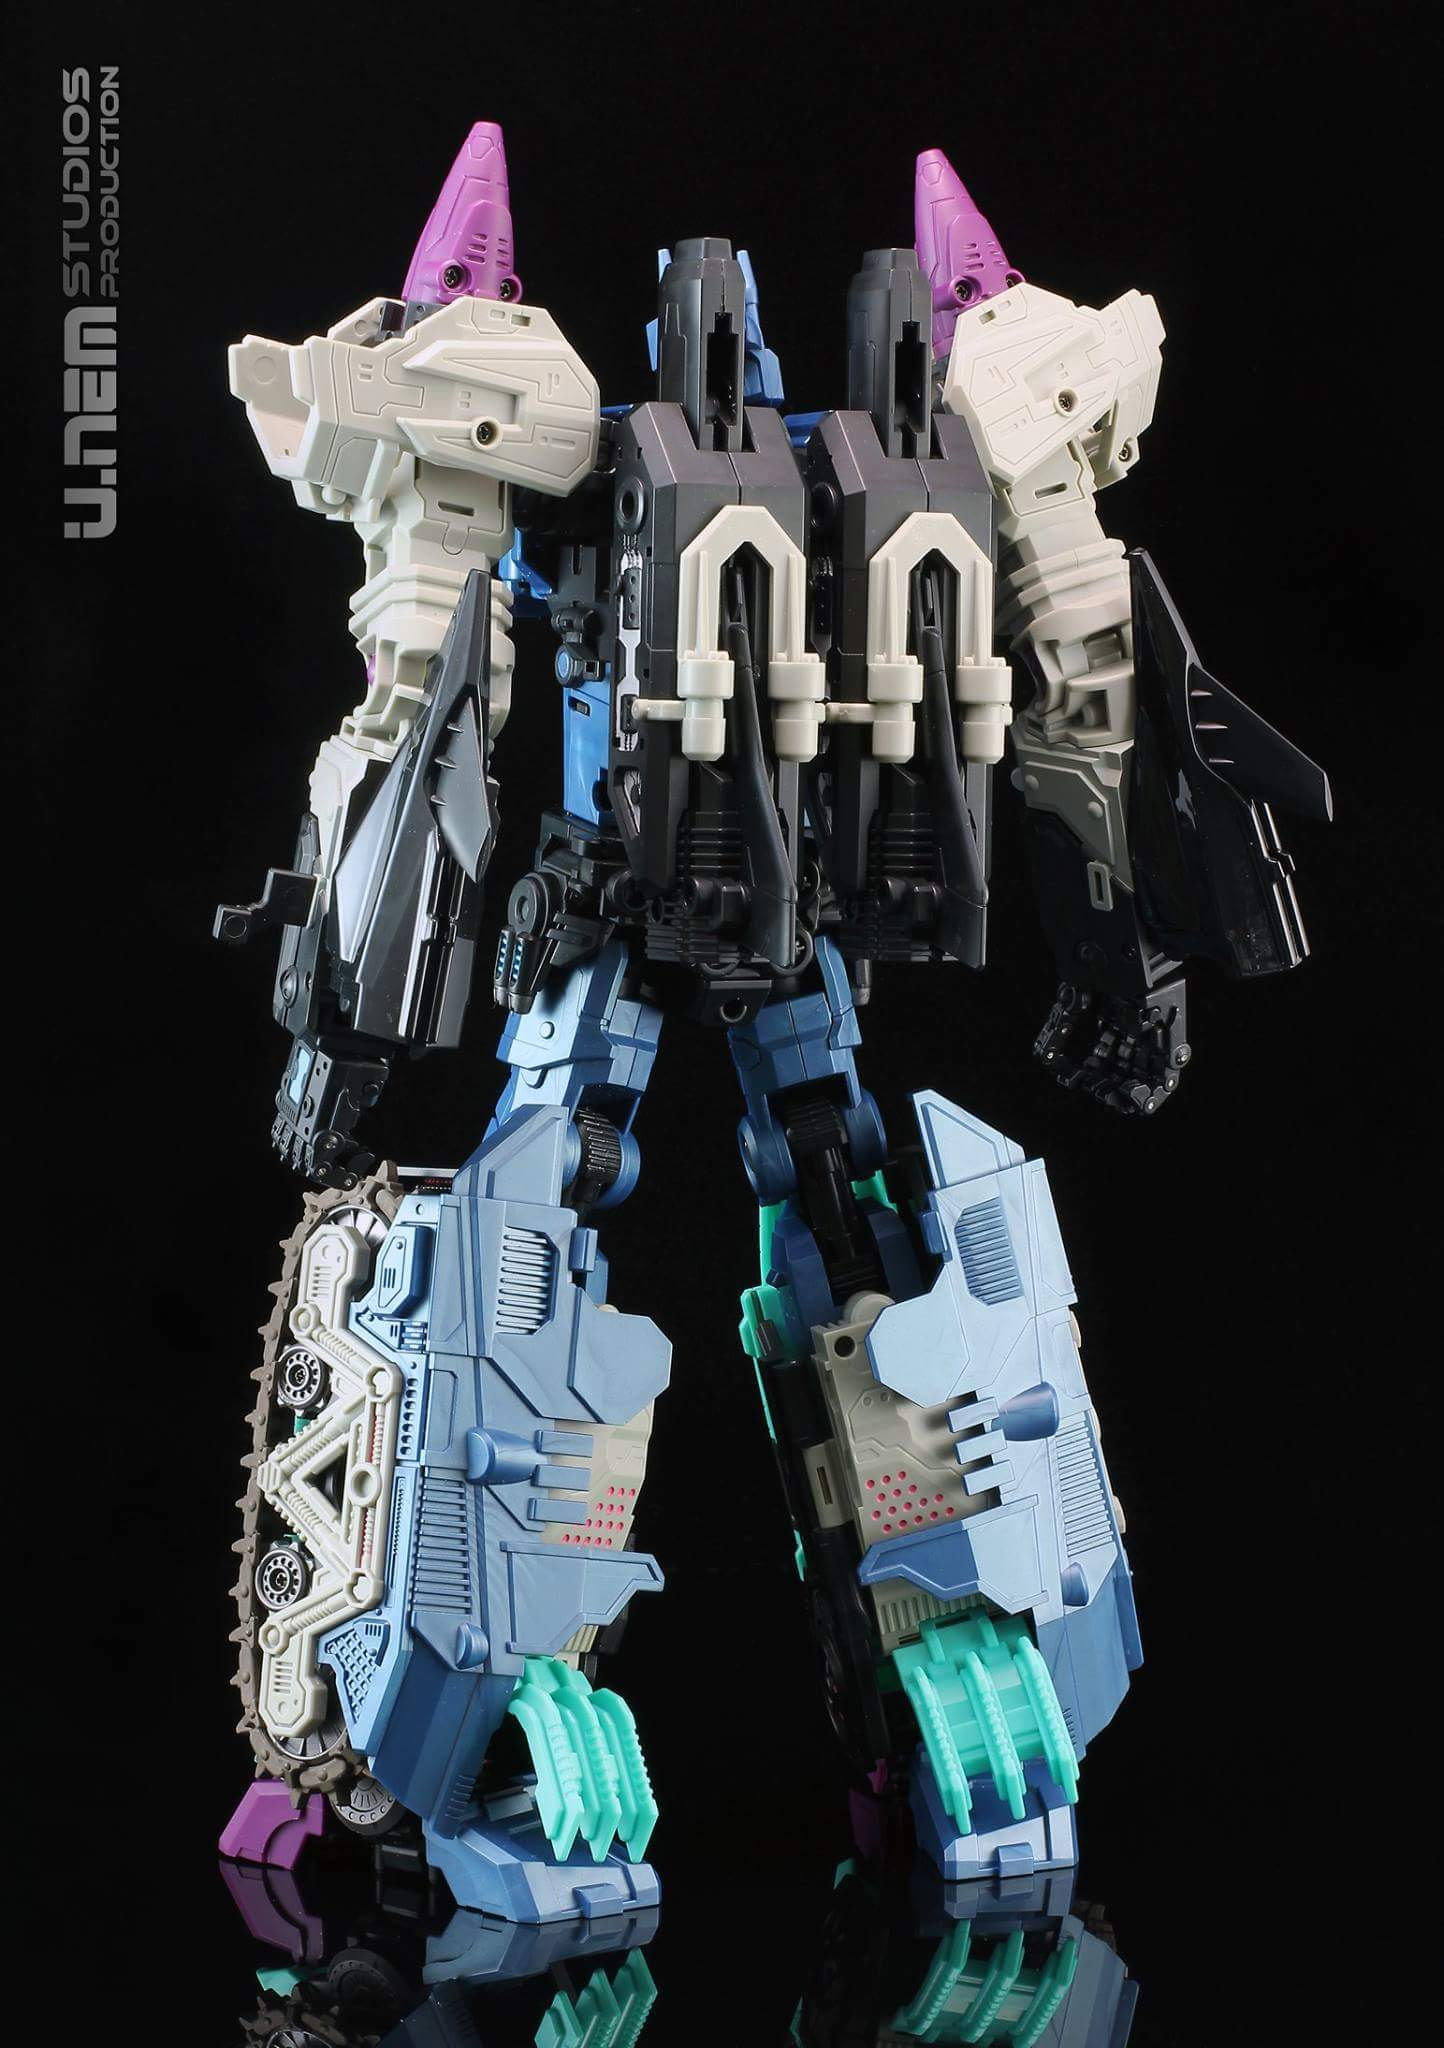 [Mastermind Creations] Produit Tiers - R-17 Carnifex - aka Overlord (TF Masterforce) - Page 2 SEr0Tu7e